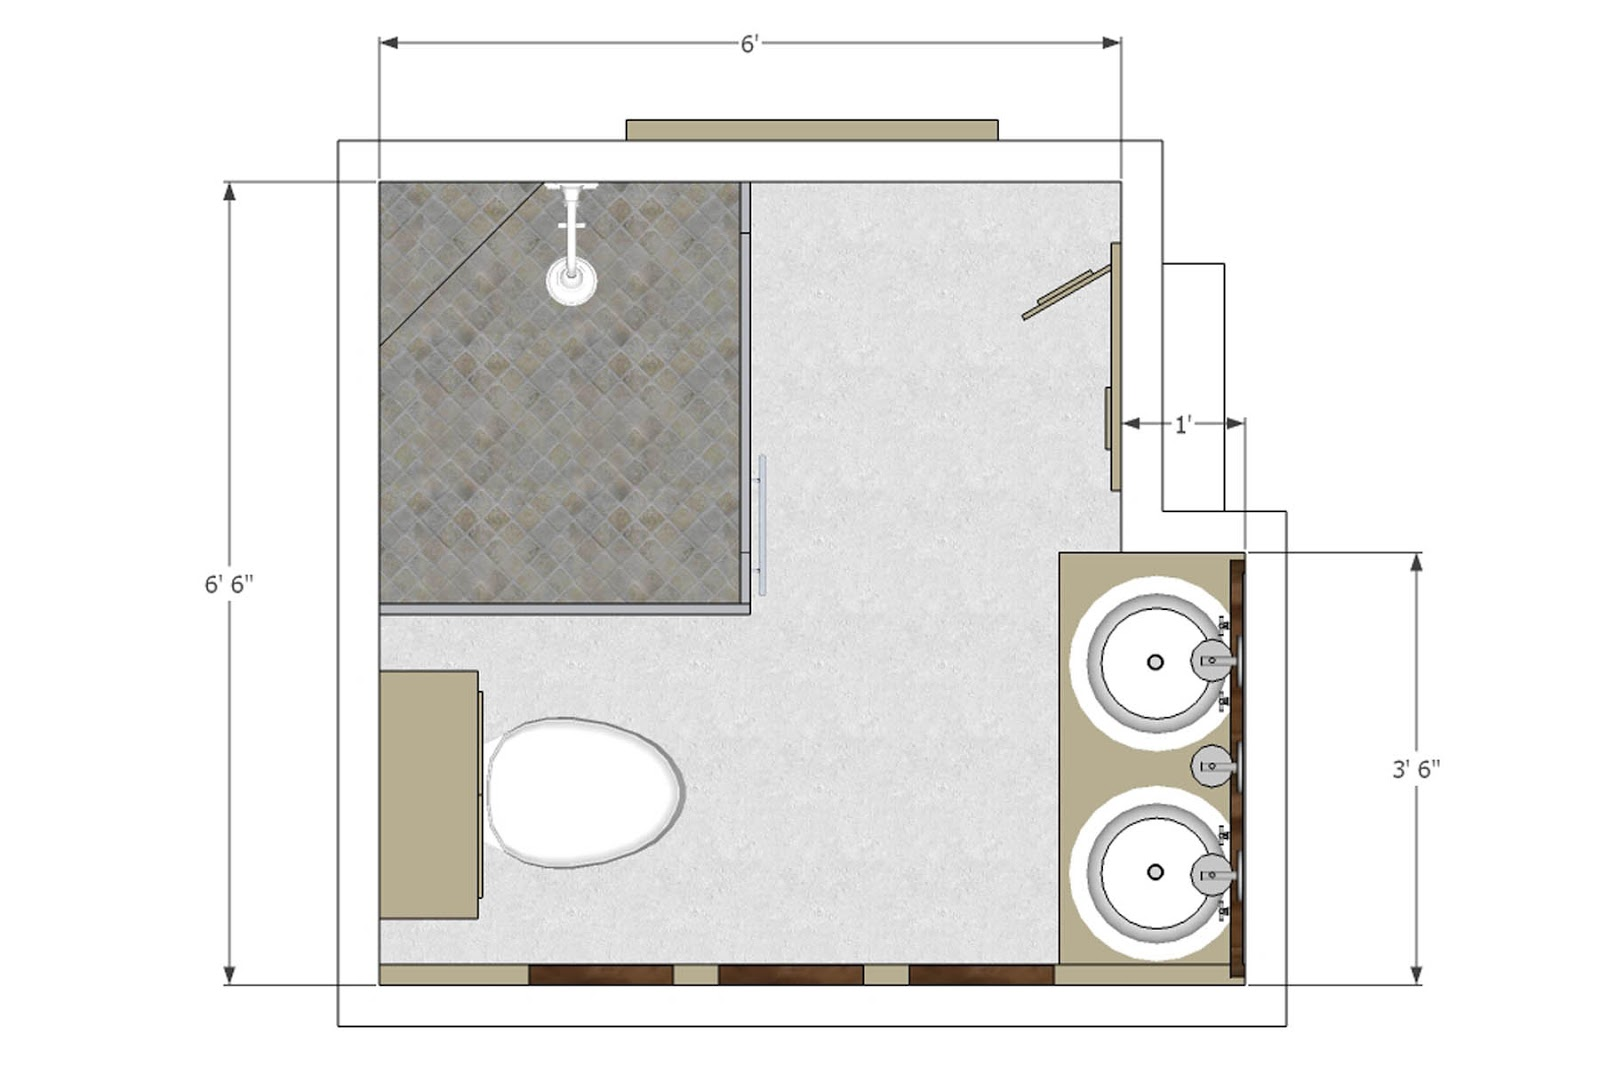 Foundation dezin decor bathroom plans views Bathroom floor plan layout tool